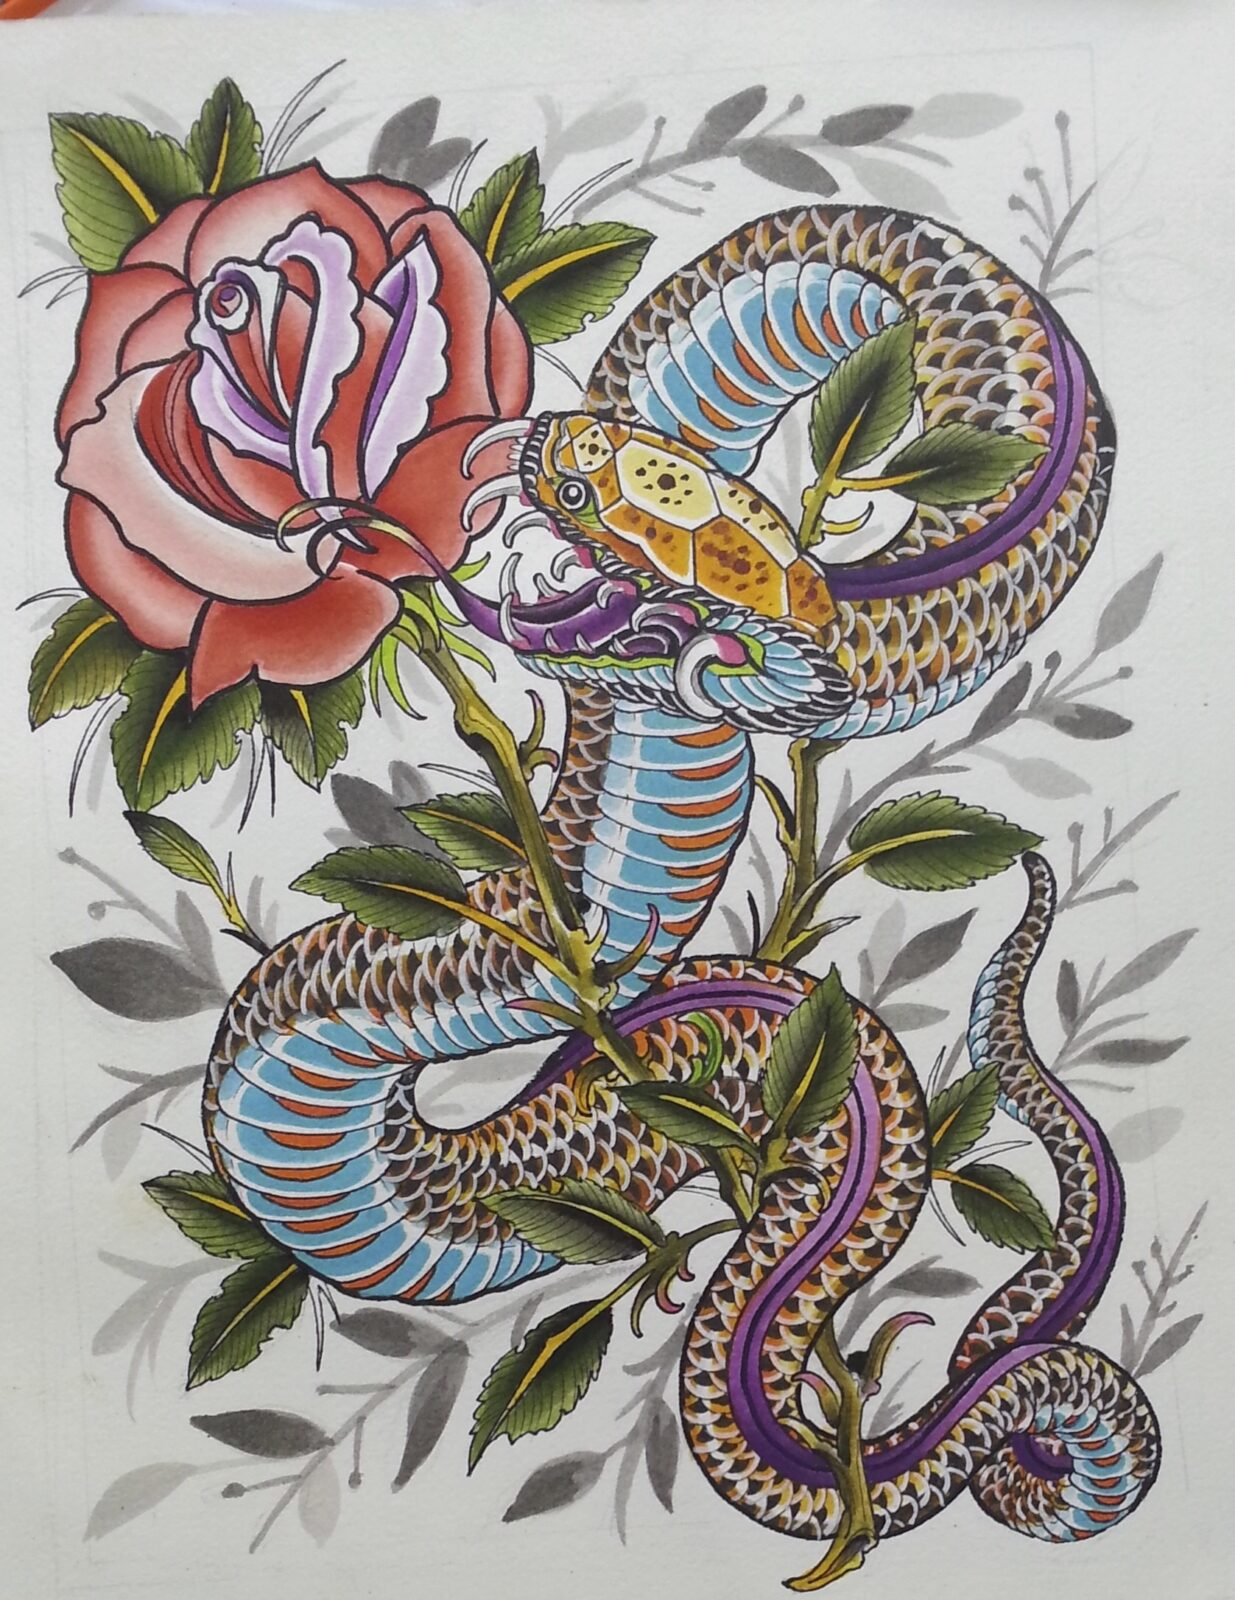 Snake vs Rose Battle